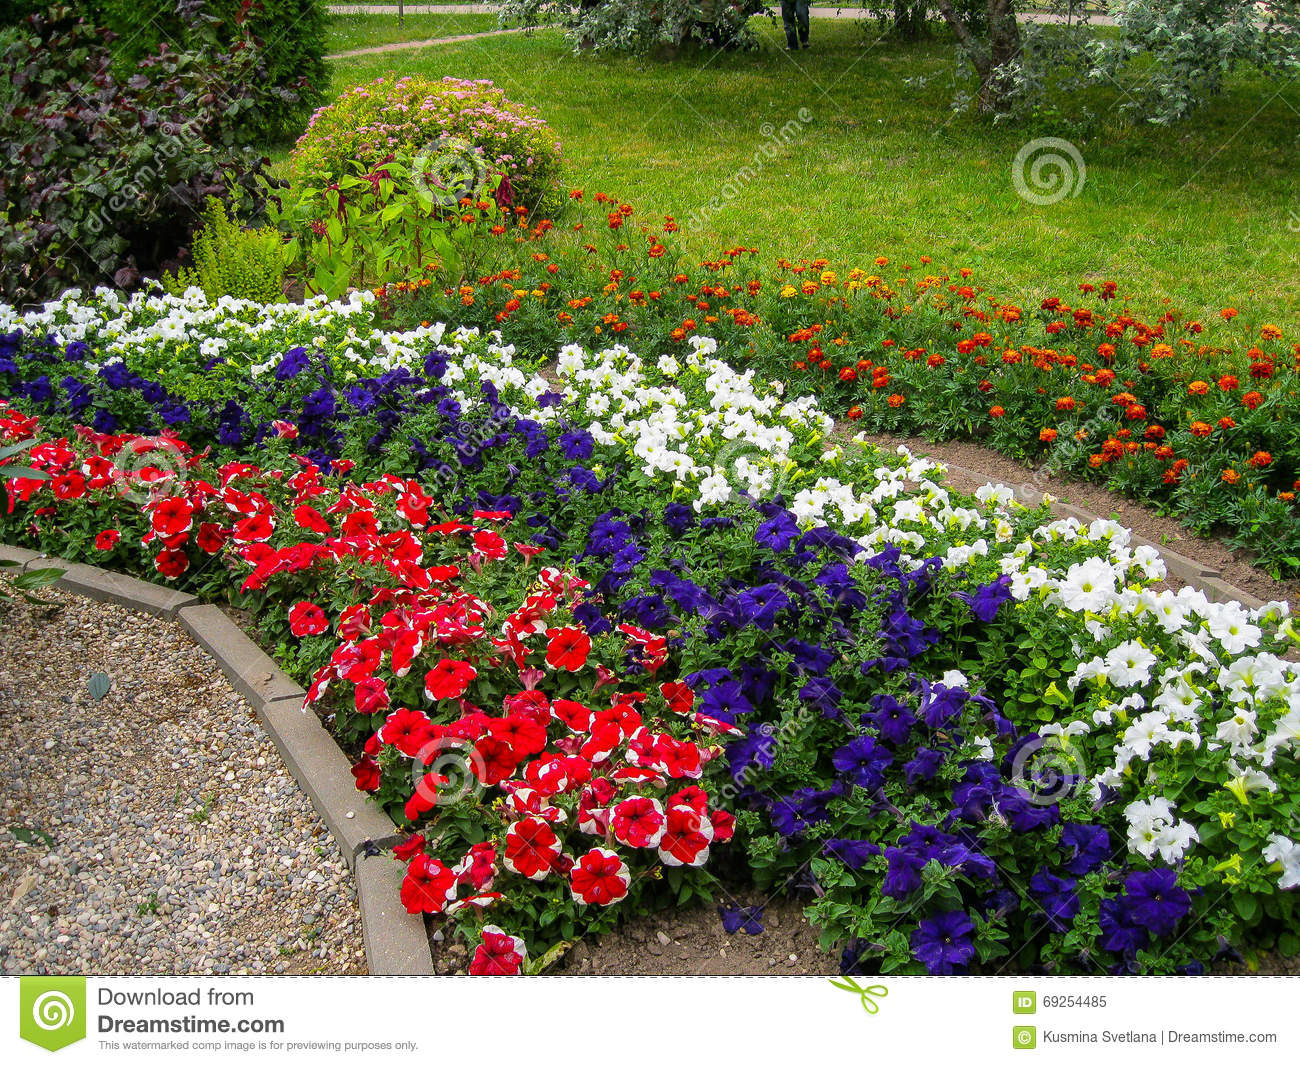 A flower bed in the garden stock photo image 69254485 for Ornamental trees for flower beds